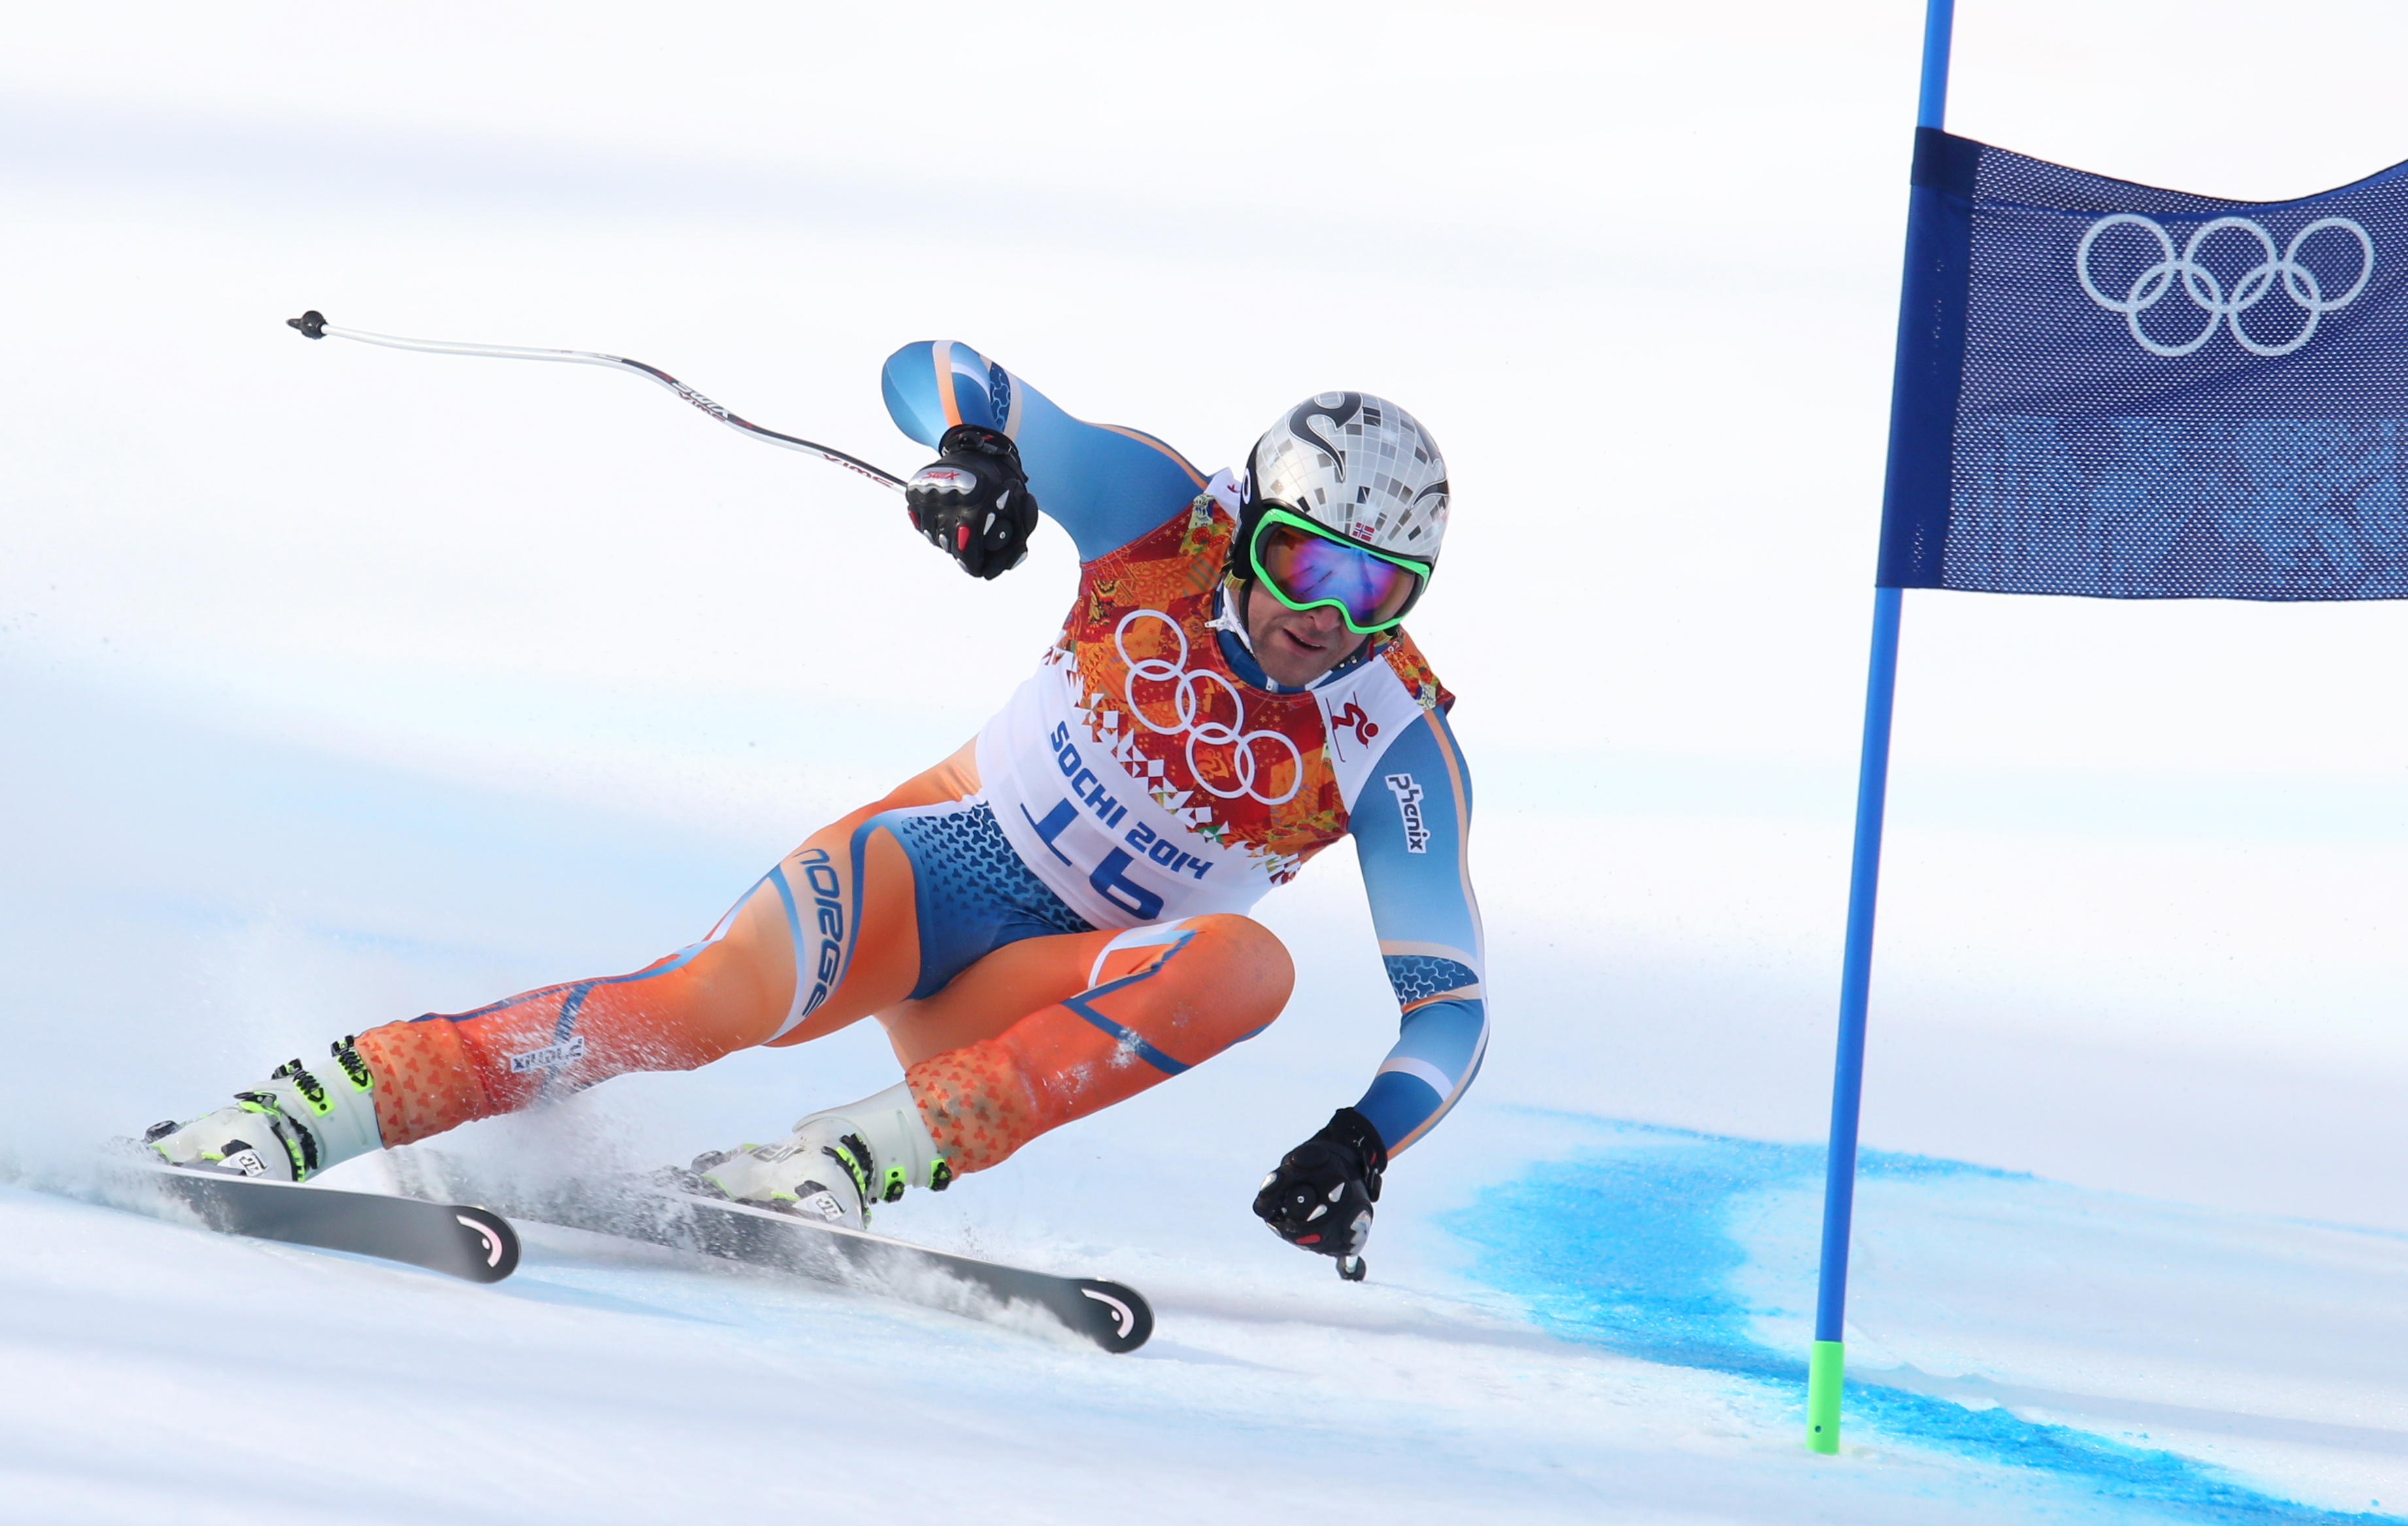 Norway's Aksel Lund Svindal passes a gate in the men's super-G the Sochi 2014 Winter Olympics, Sunday, Feb. 16, 2014, in Krasnaya Polyana, Russia. (AP Photo/Alessandro Trovati)